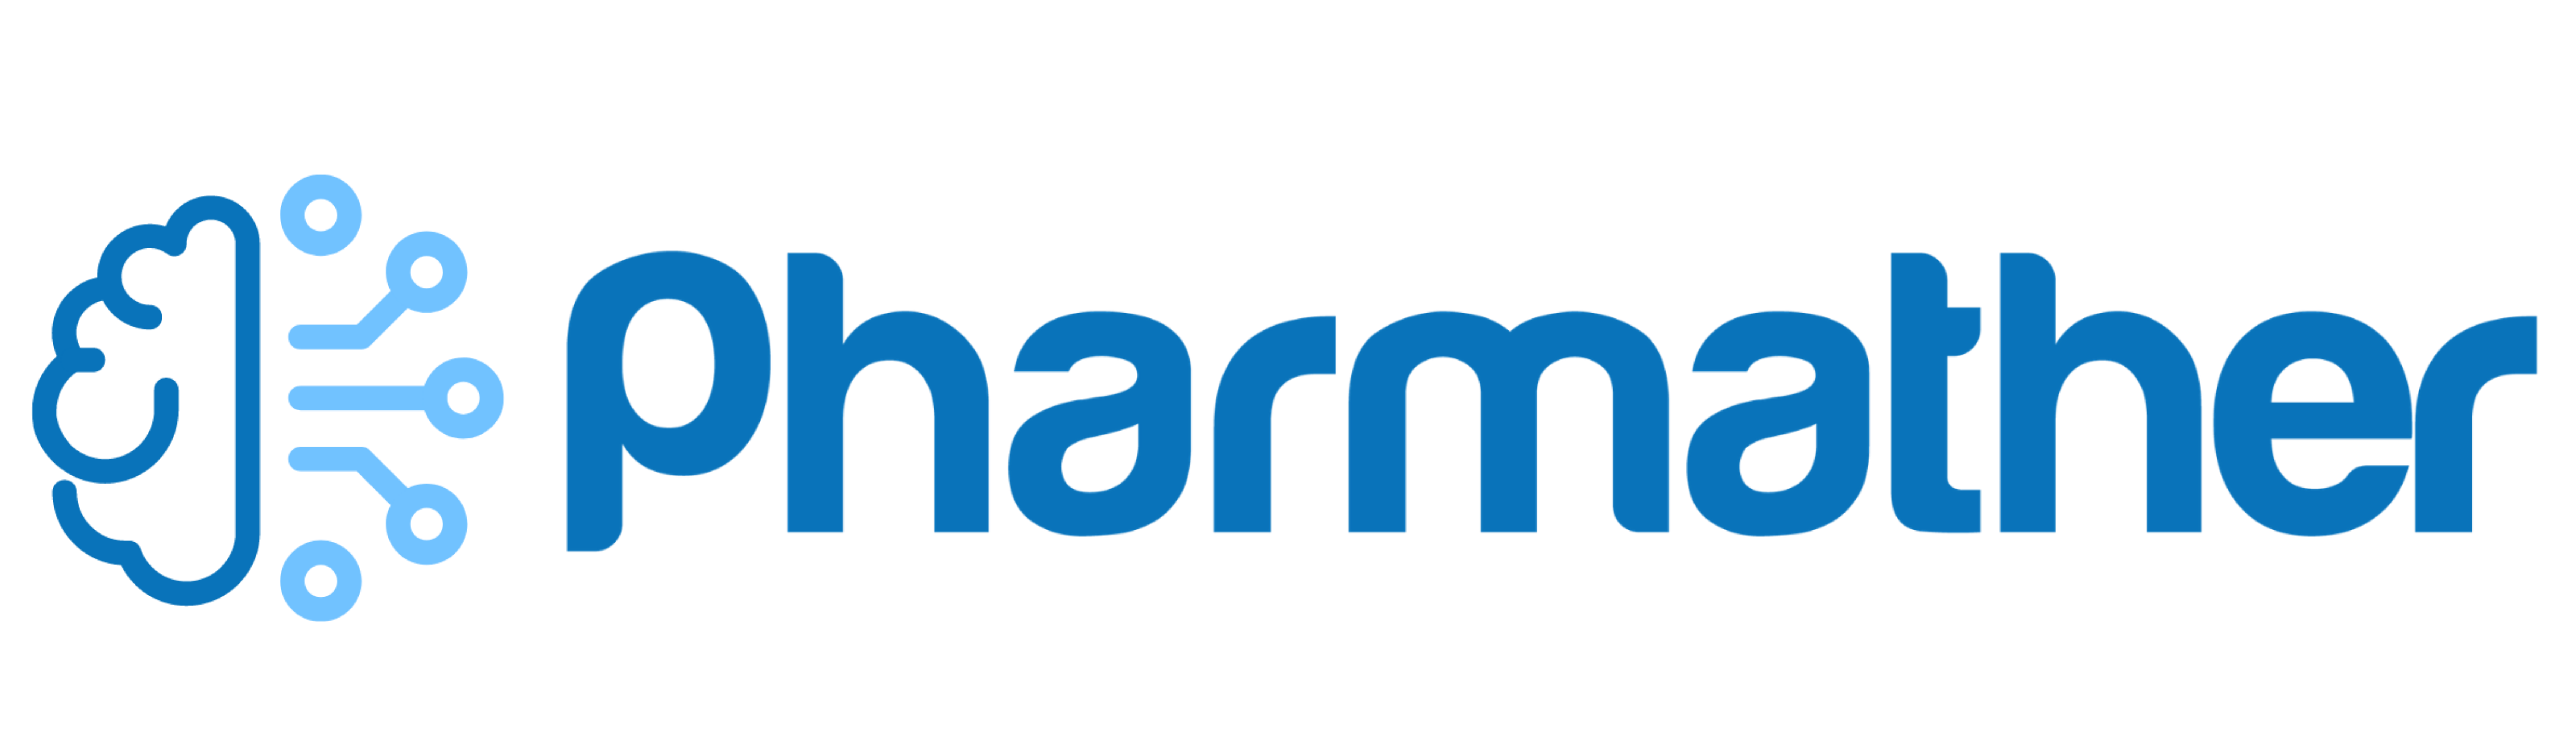 PharmaTher Signs Exclusive Worldwide License Agreement for Patented Microneedle Delivery Technology to Deliver Ketamine